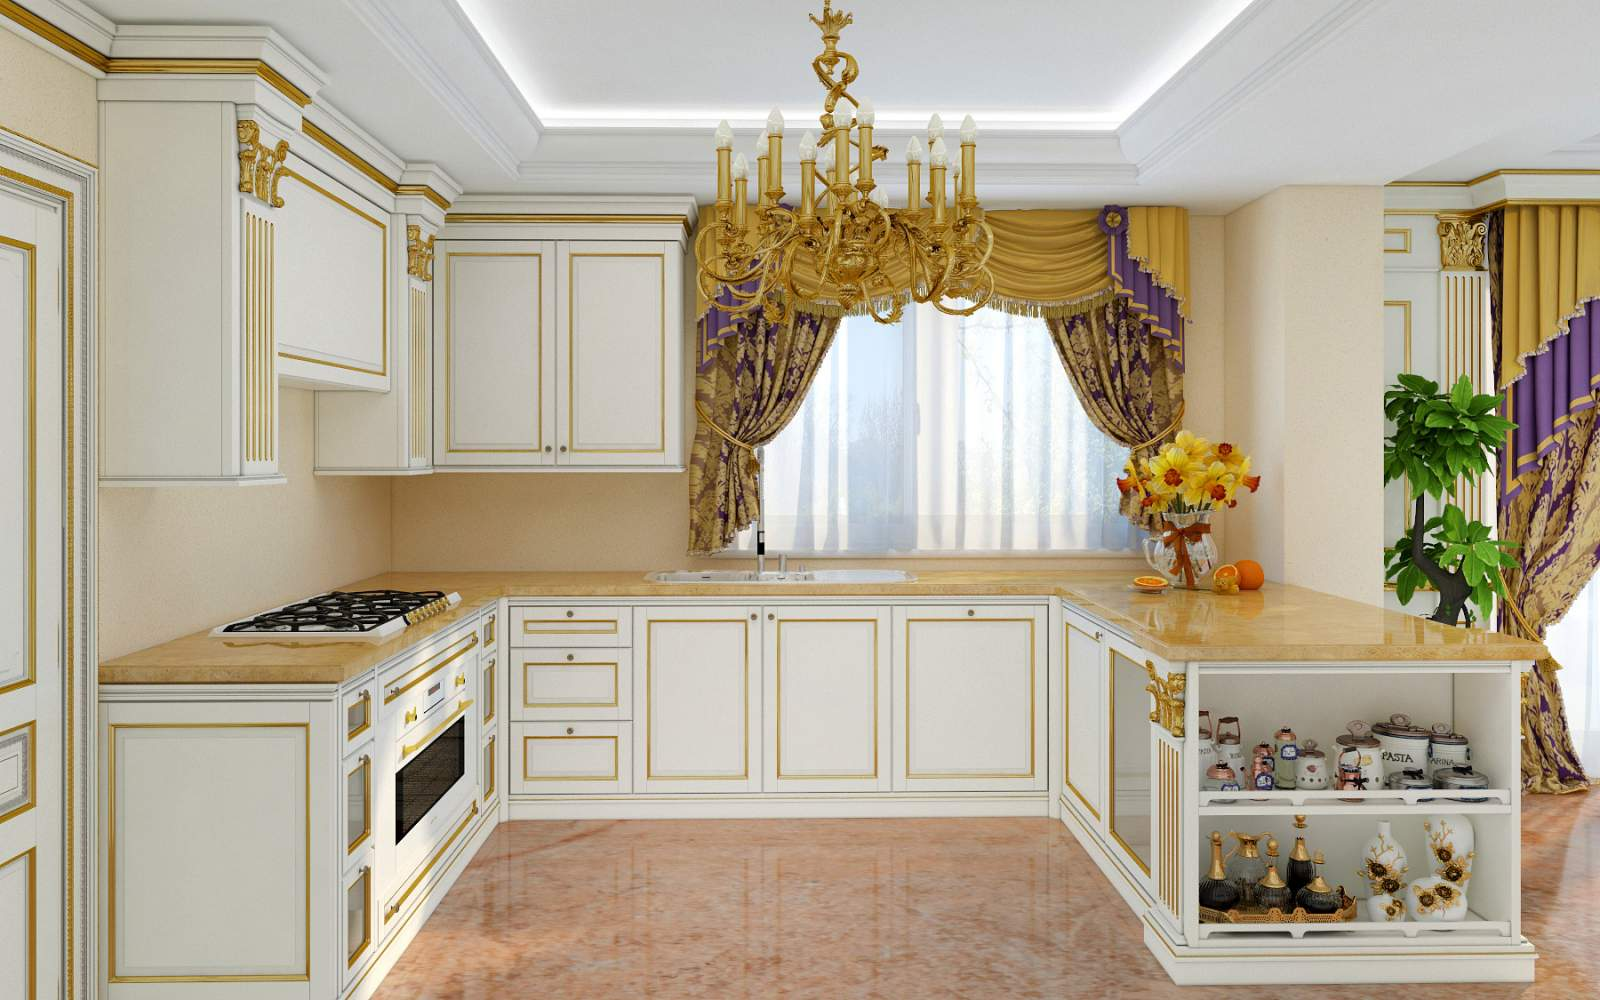 Luxury classic kitchen model Legacy